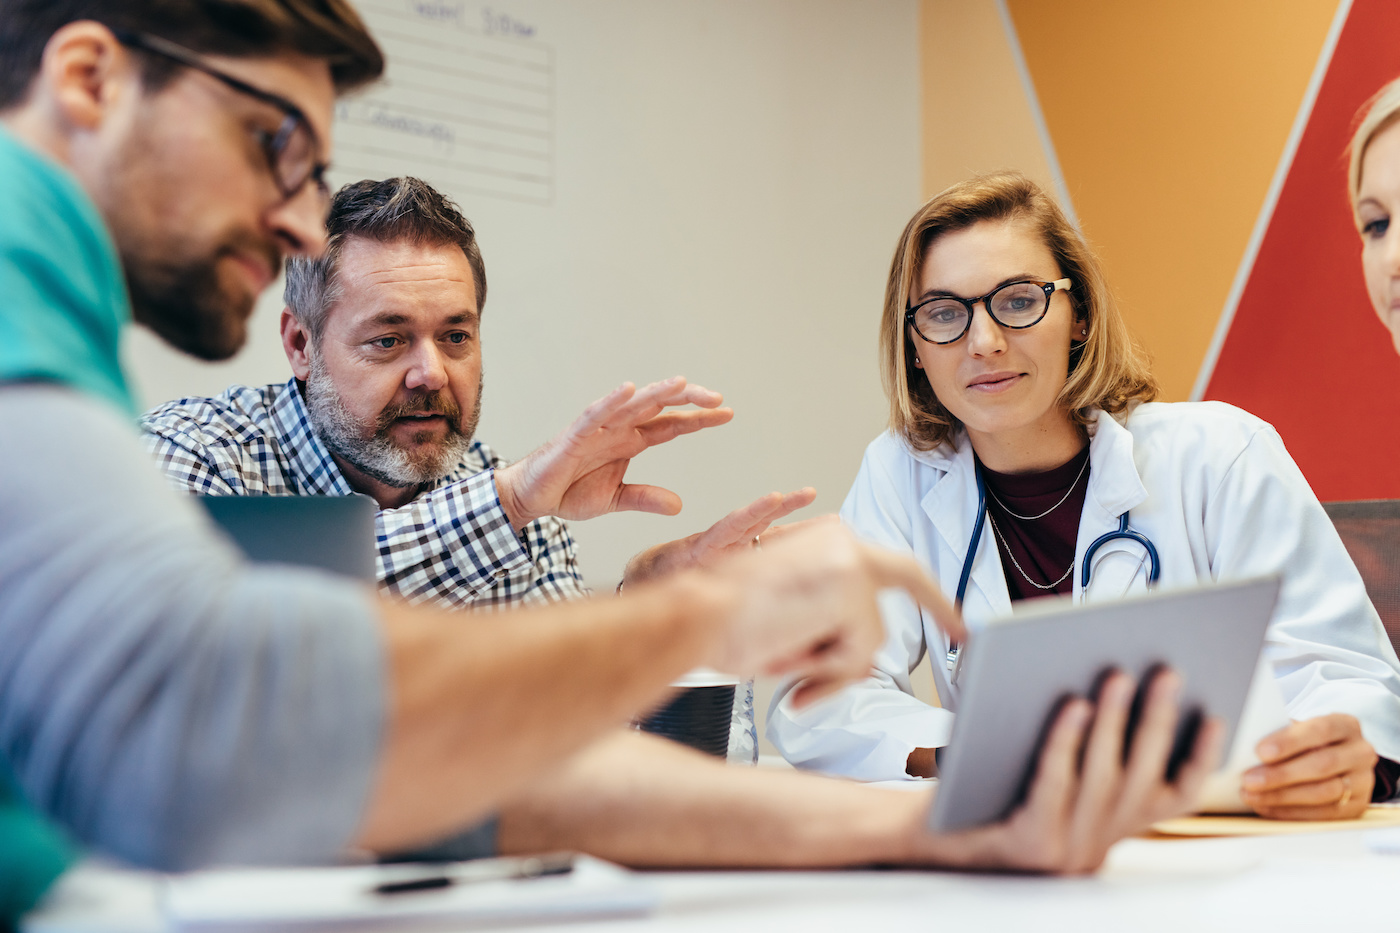 7 Top Healthcare Marketing Challenges (+ Tips for Driving Revenue)